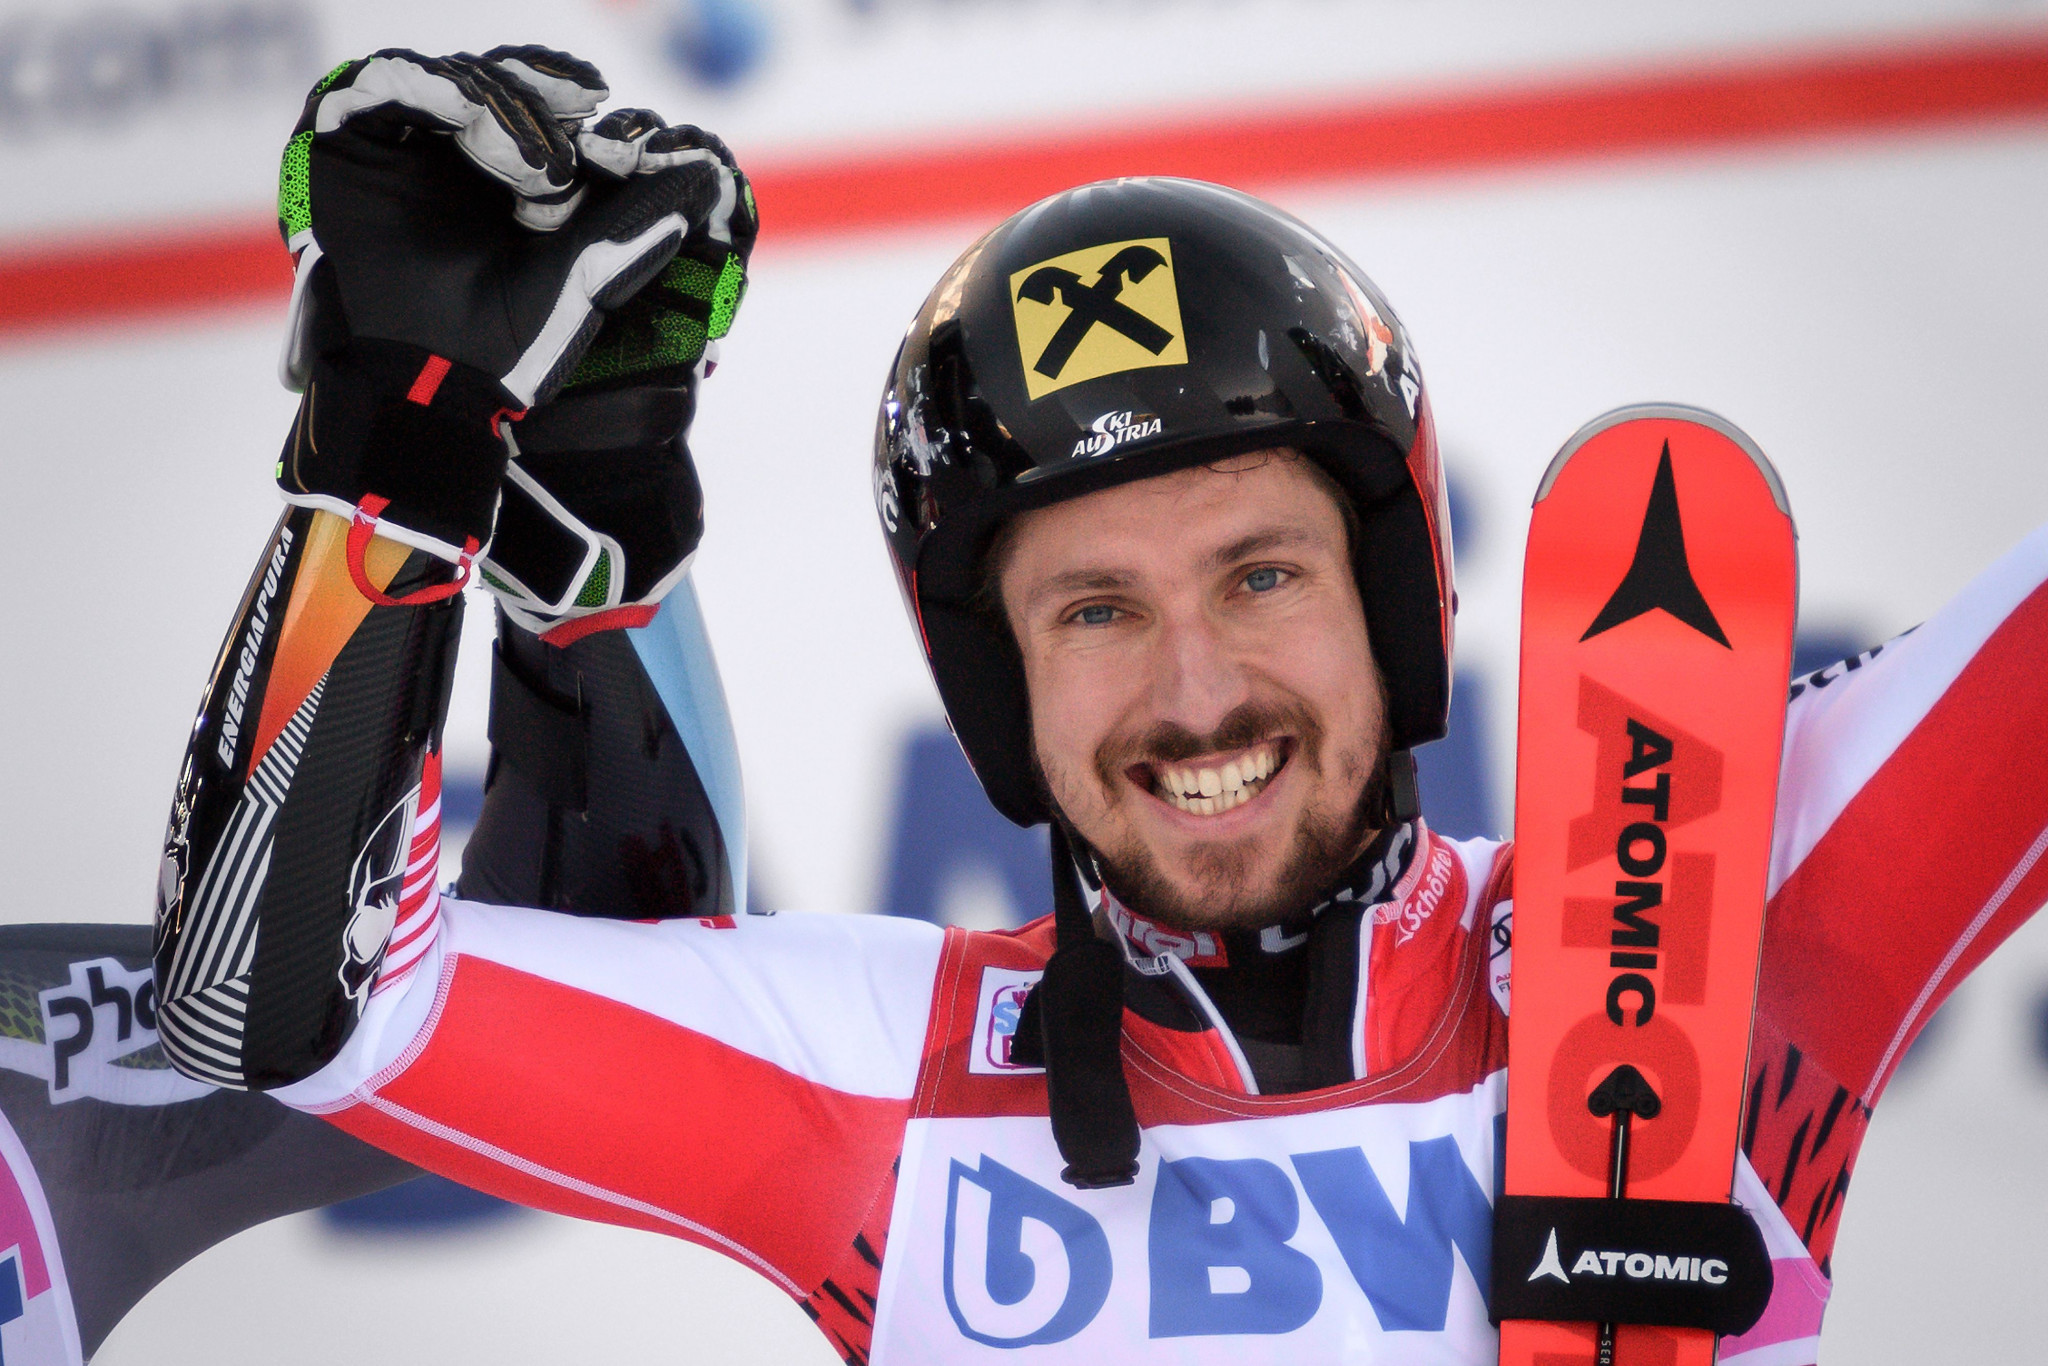 Austria's Marcel Hirscher won the men's giant slalom at the FIS Alpine Skiing World Cup in Adelboden ©Getty Images